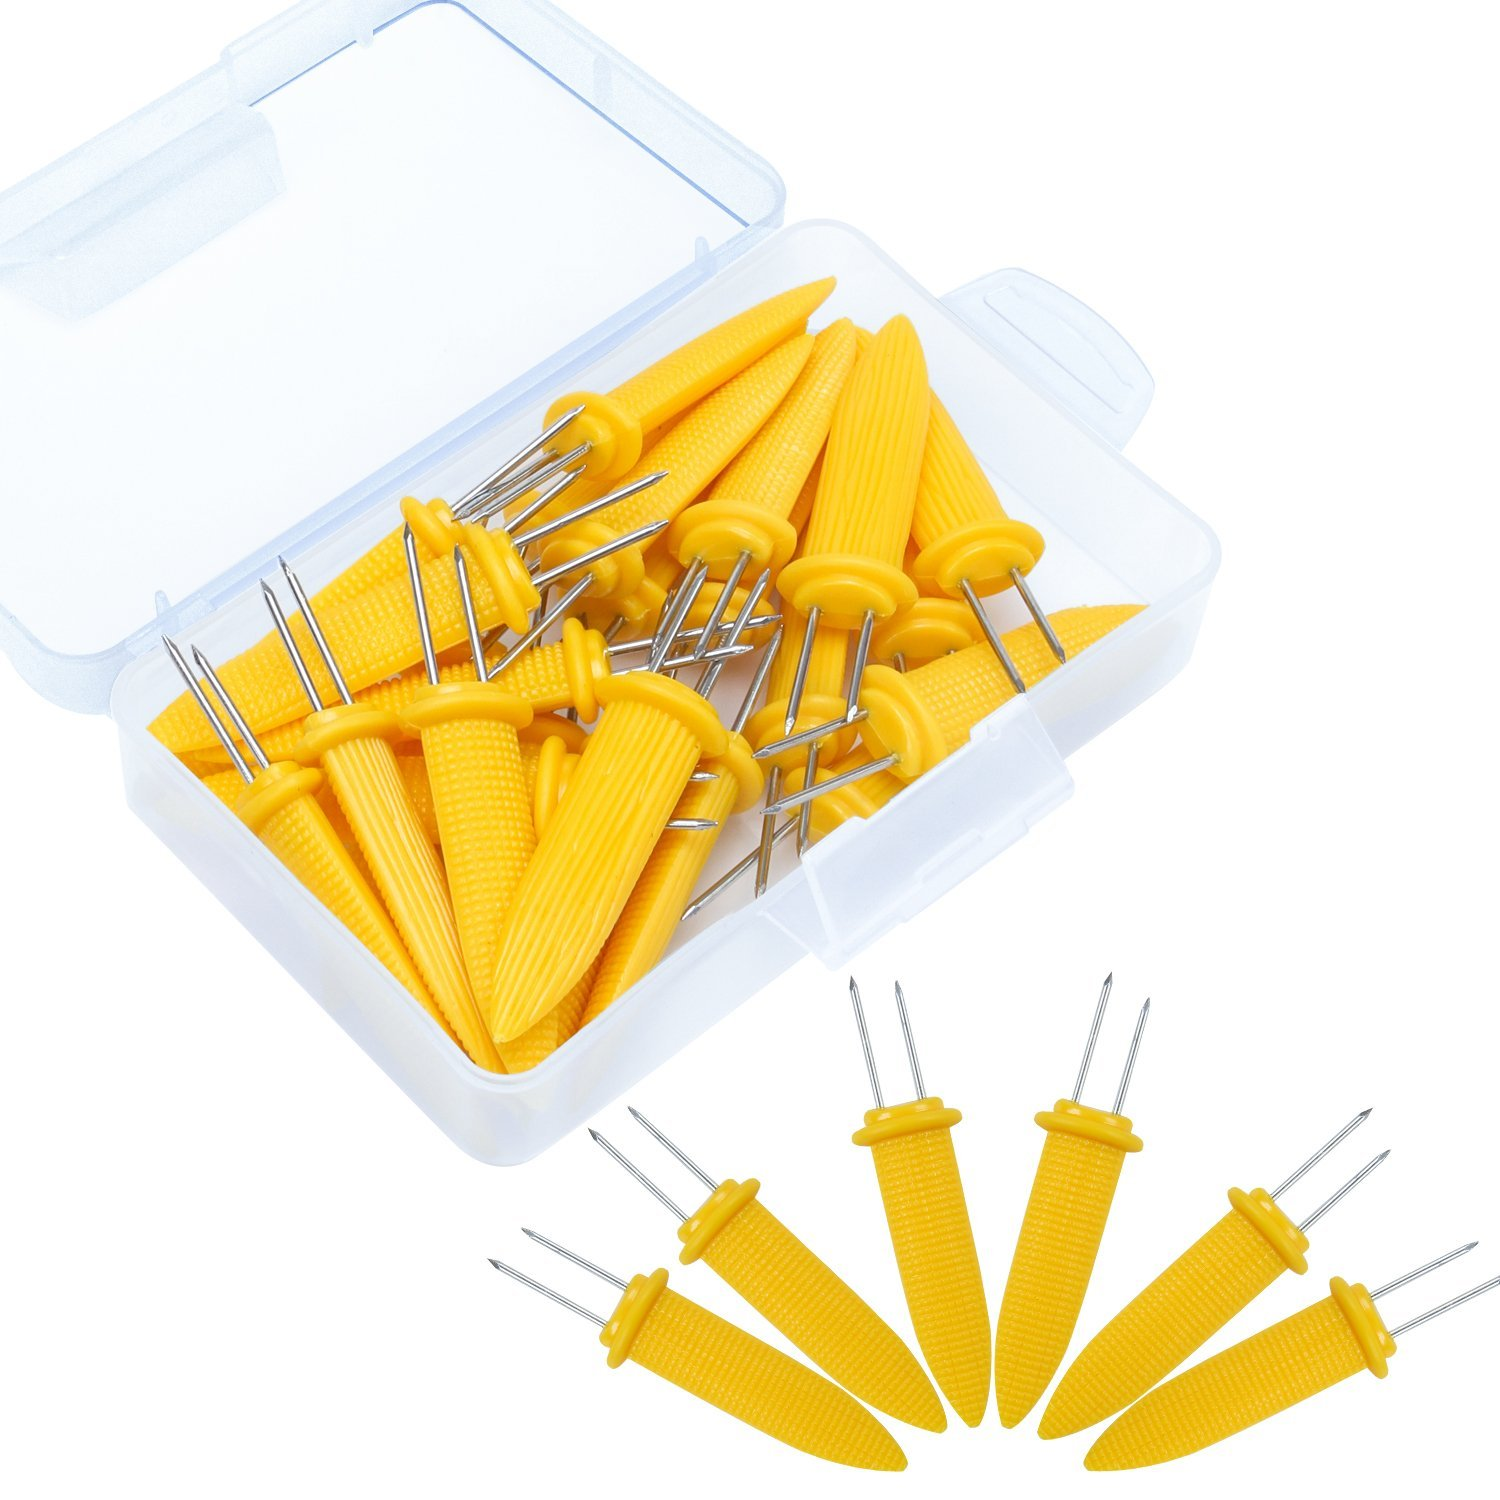 Elcoho 25 Pack 3.35 Inch Large Corn Holders Stainless Steel Corn on the Cob Skewers Holders with Storage Box